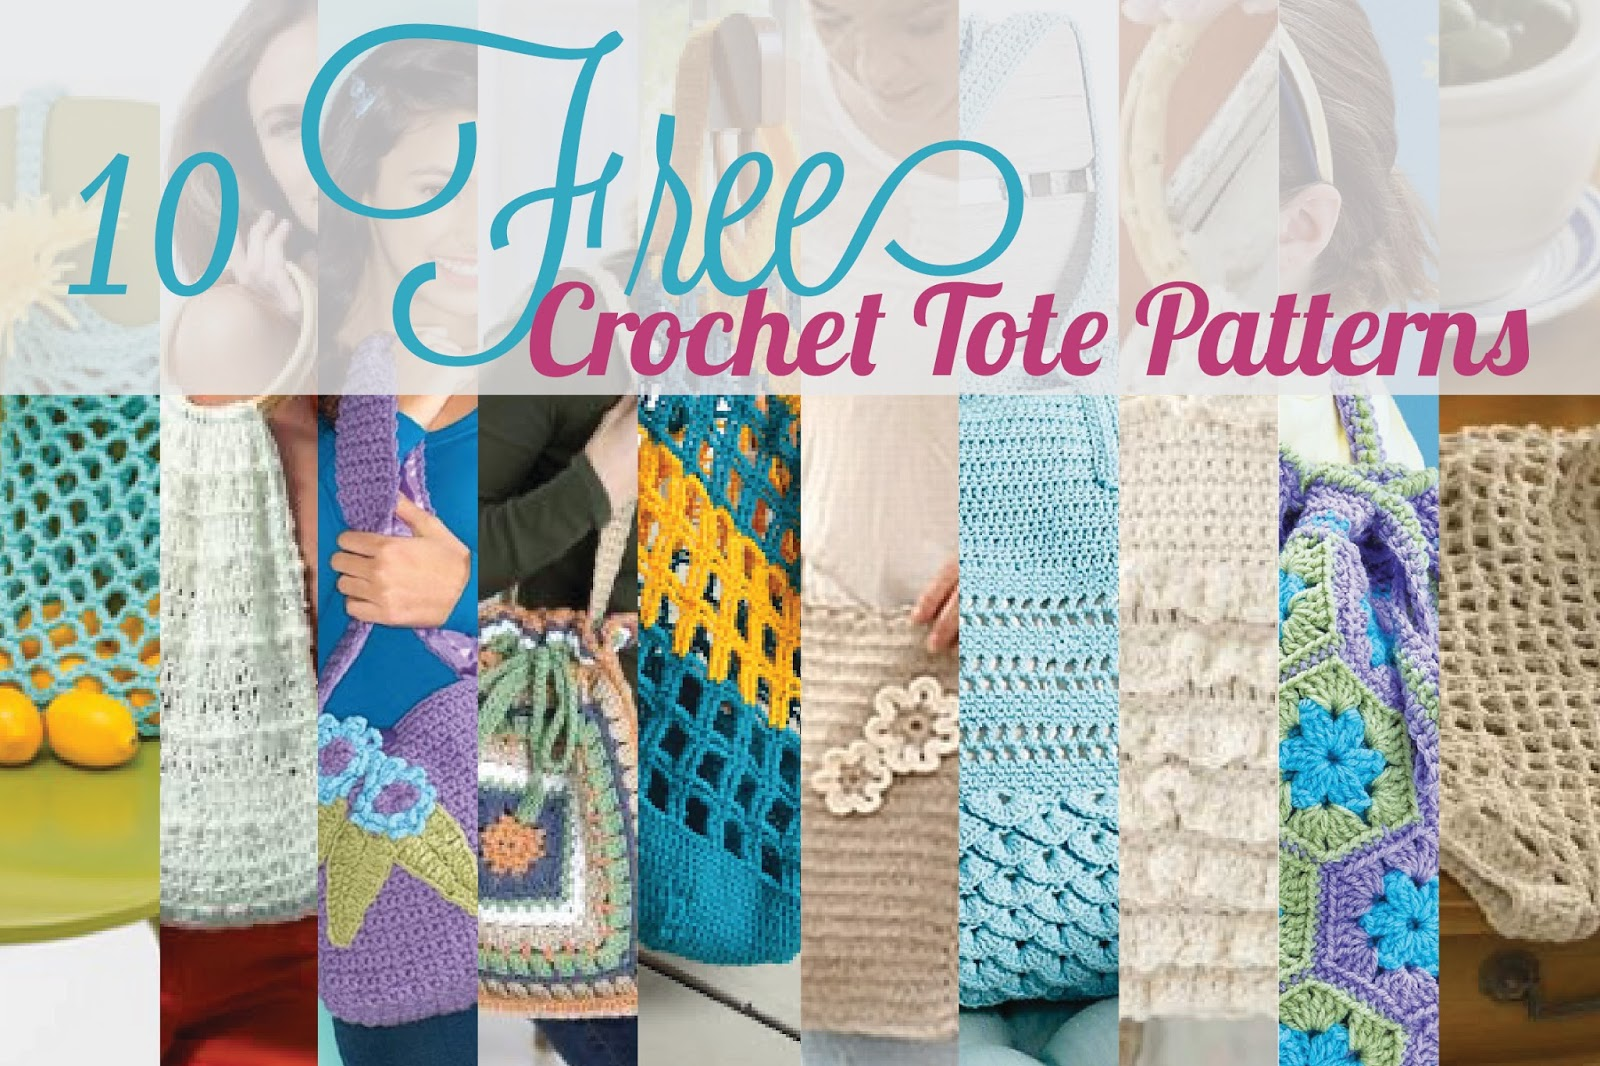 Cottontail crochet 10 free crochet tote patterns 10 free crochet tote patterns bankloansurffo Gallery